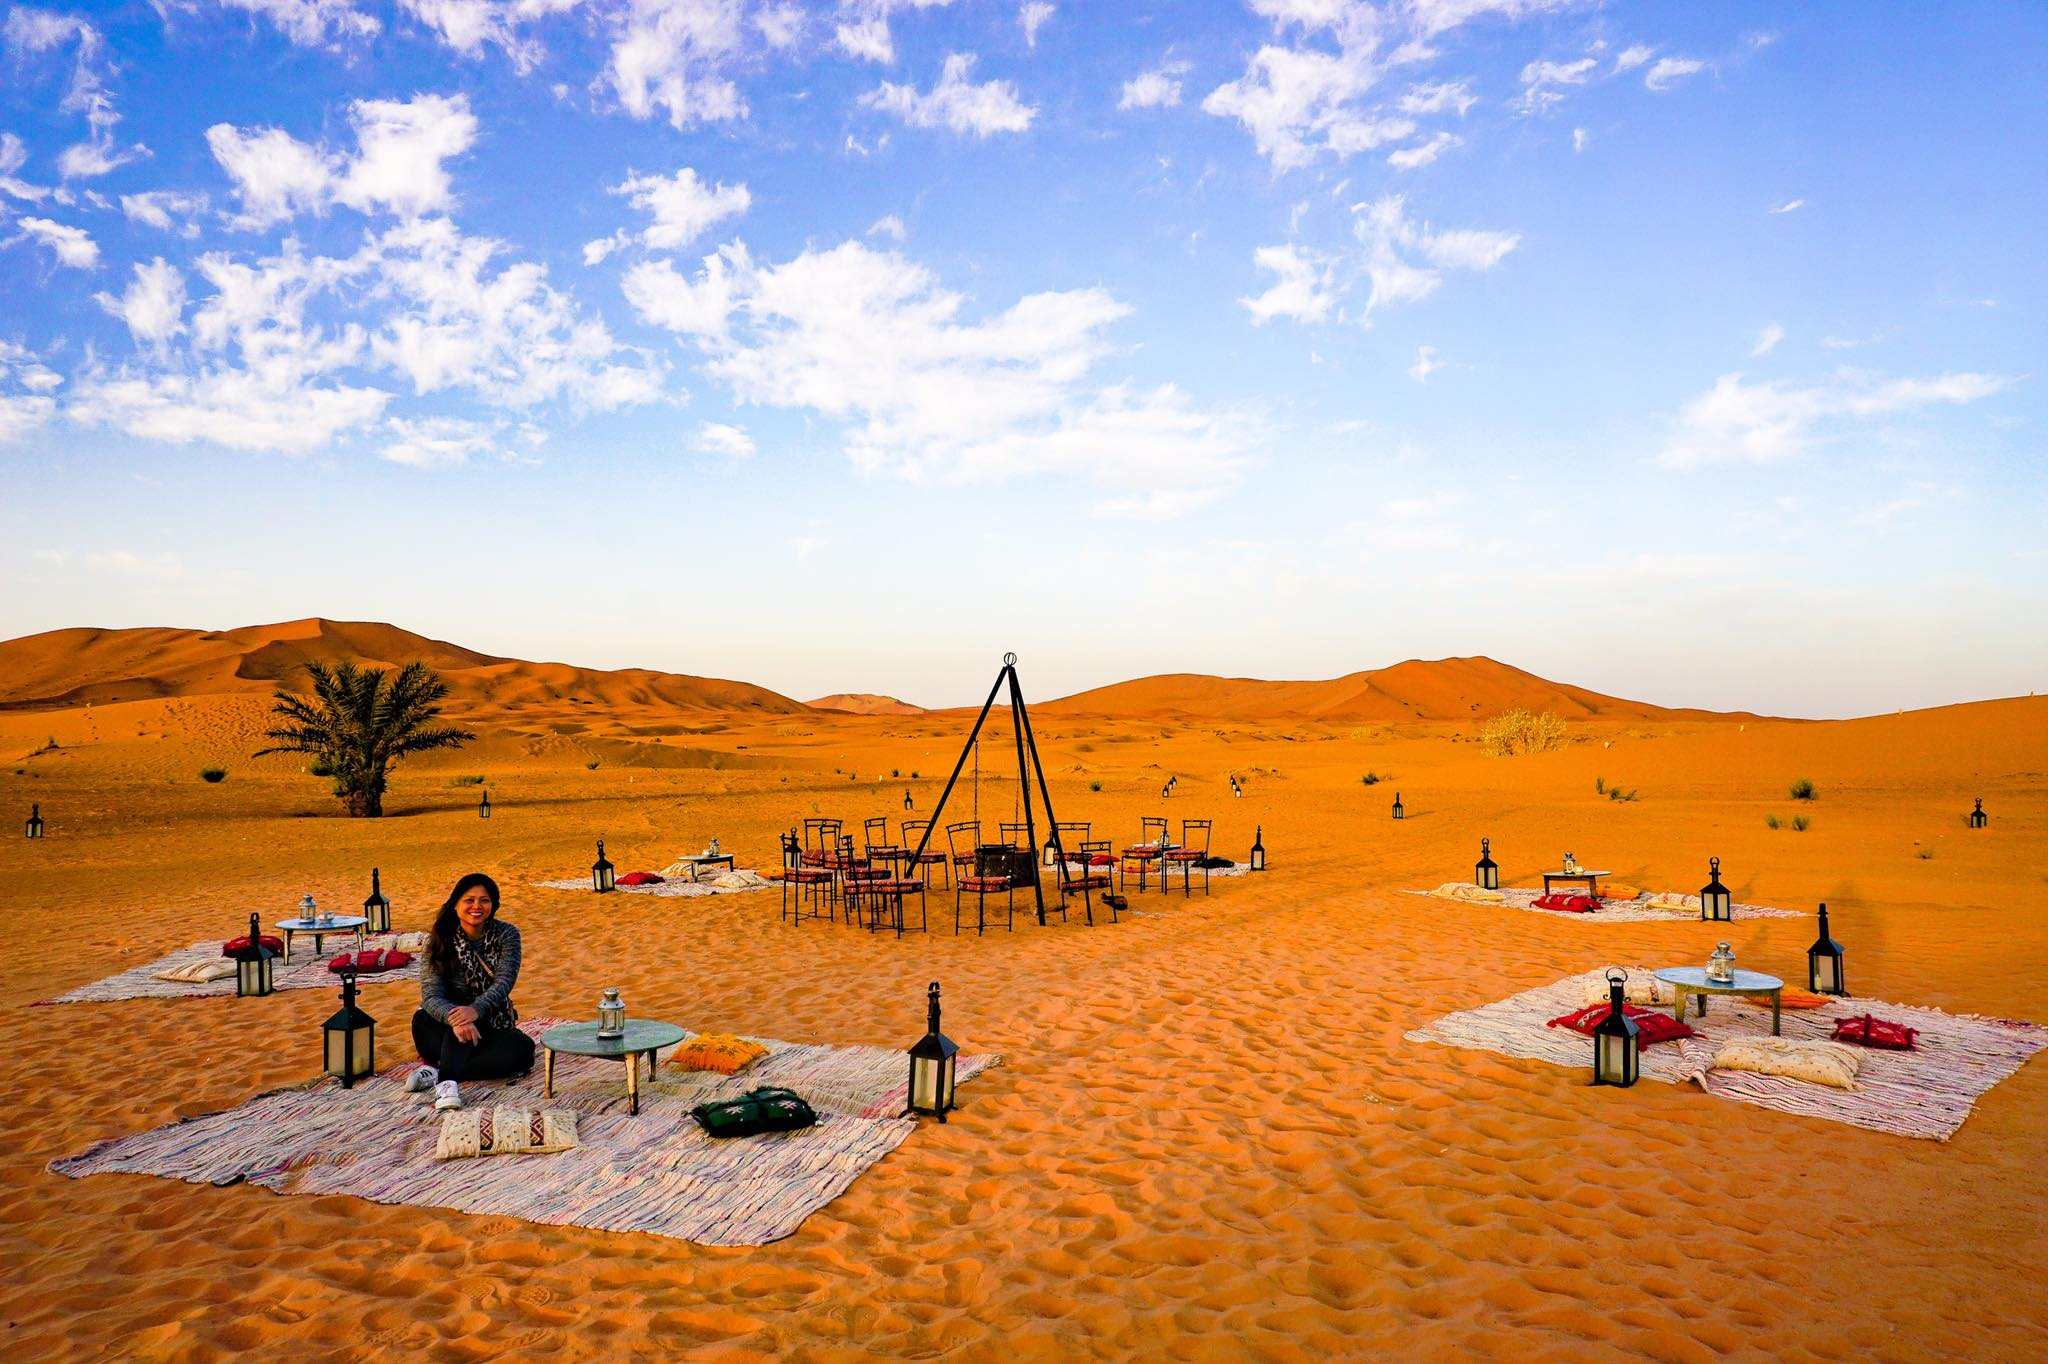 10f3bdc7d487-Duyen_on_camp_site_in_morocco.jpg